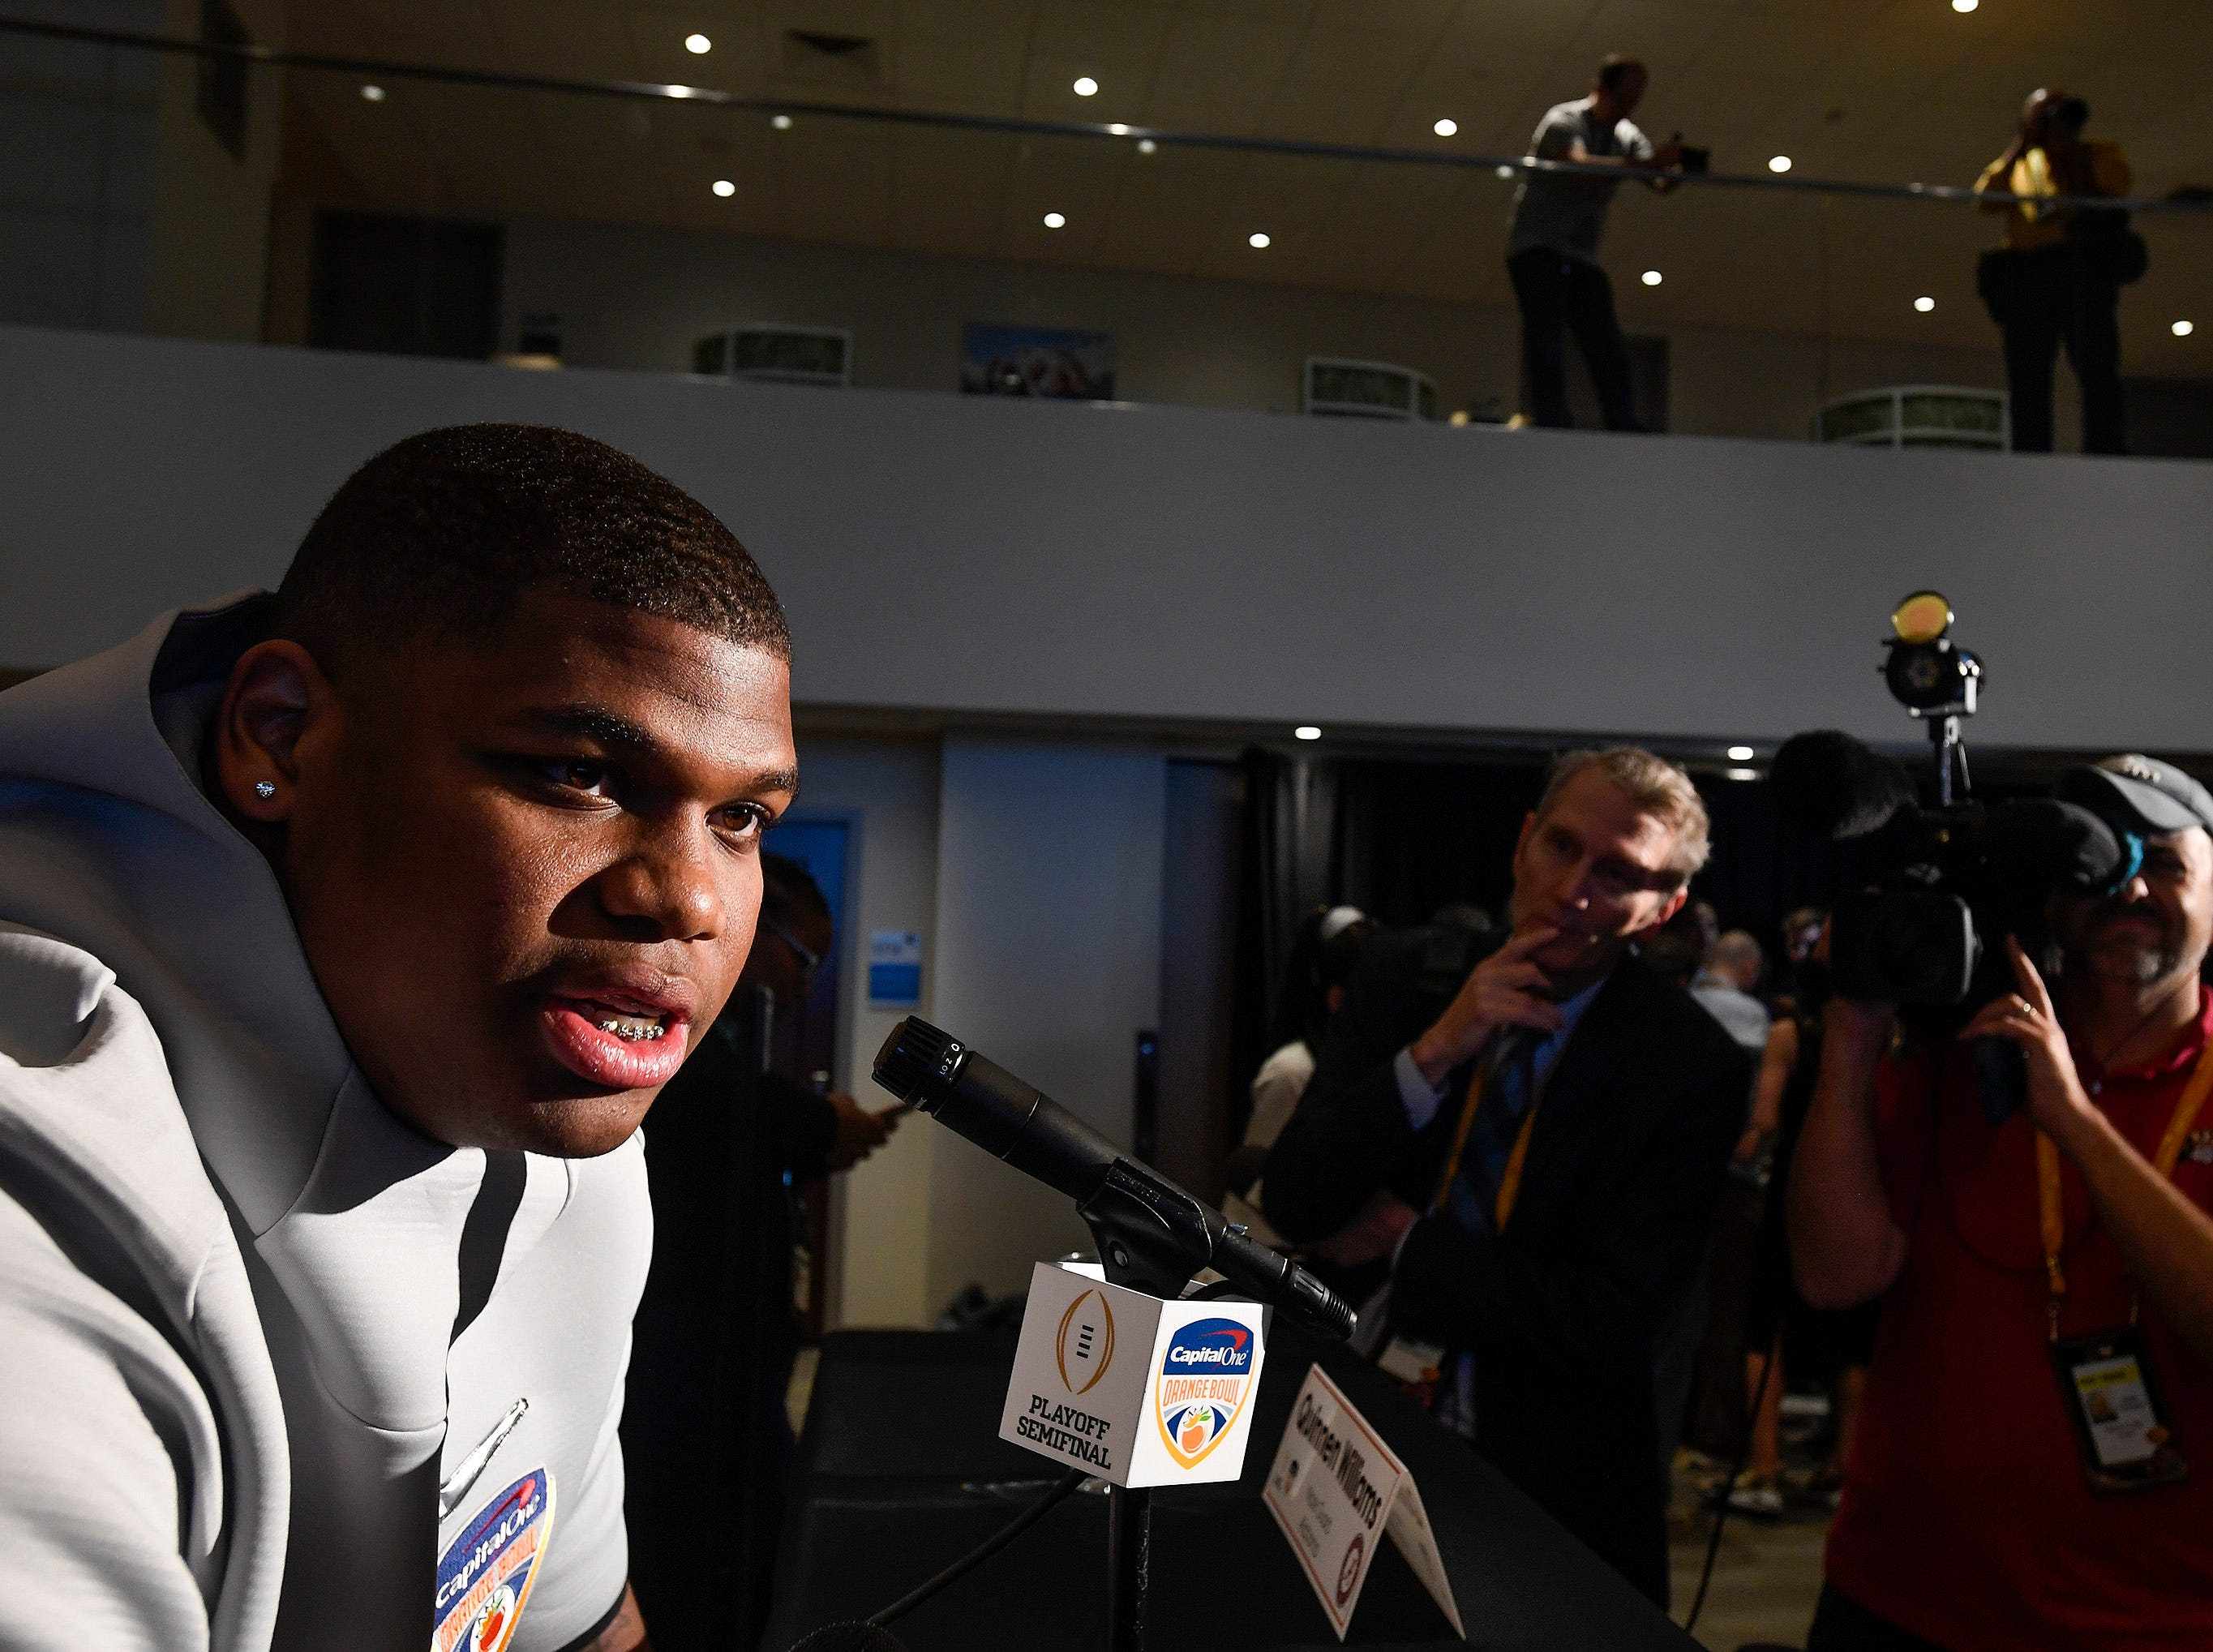 Alabama defensive lineman Quinnen Williams (92) during the Alabama Media Day at the Hard Rock Stadium in Miami Gardens, Fla., on Wednesday December 26, 2018.